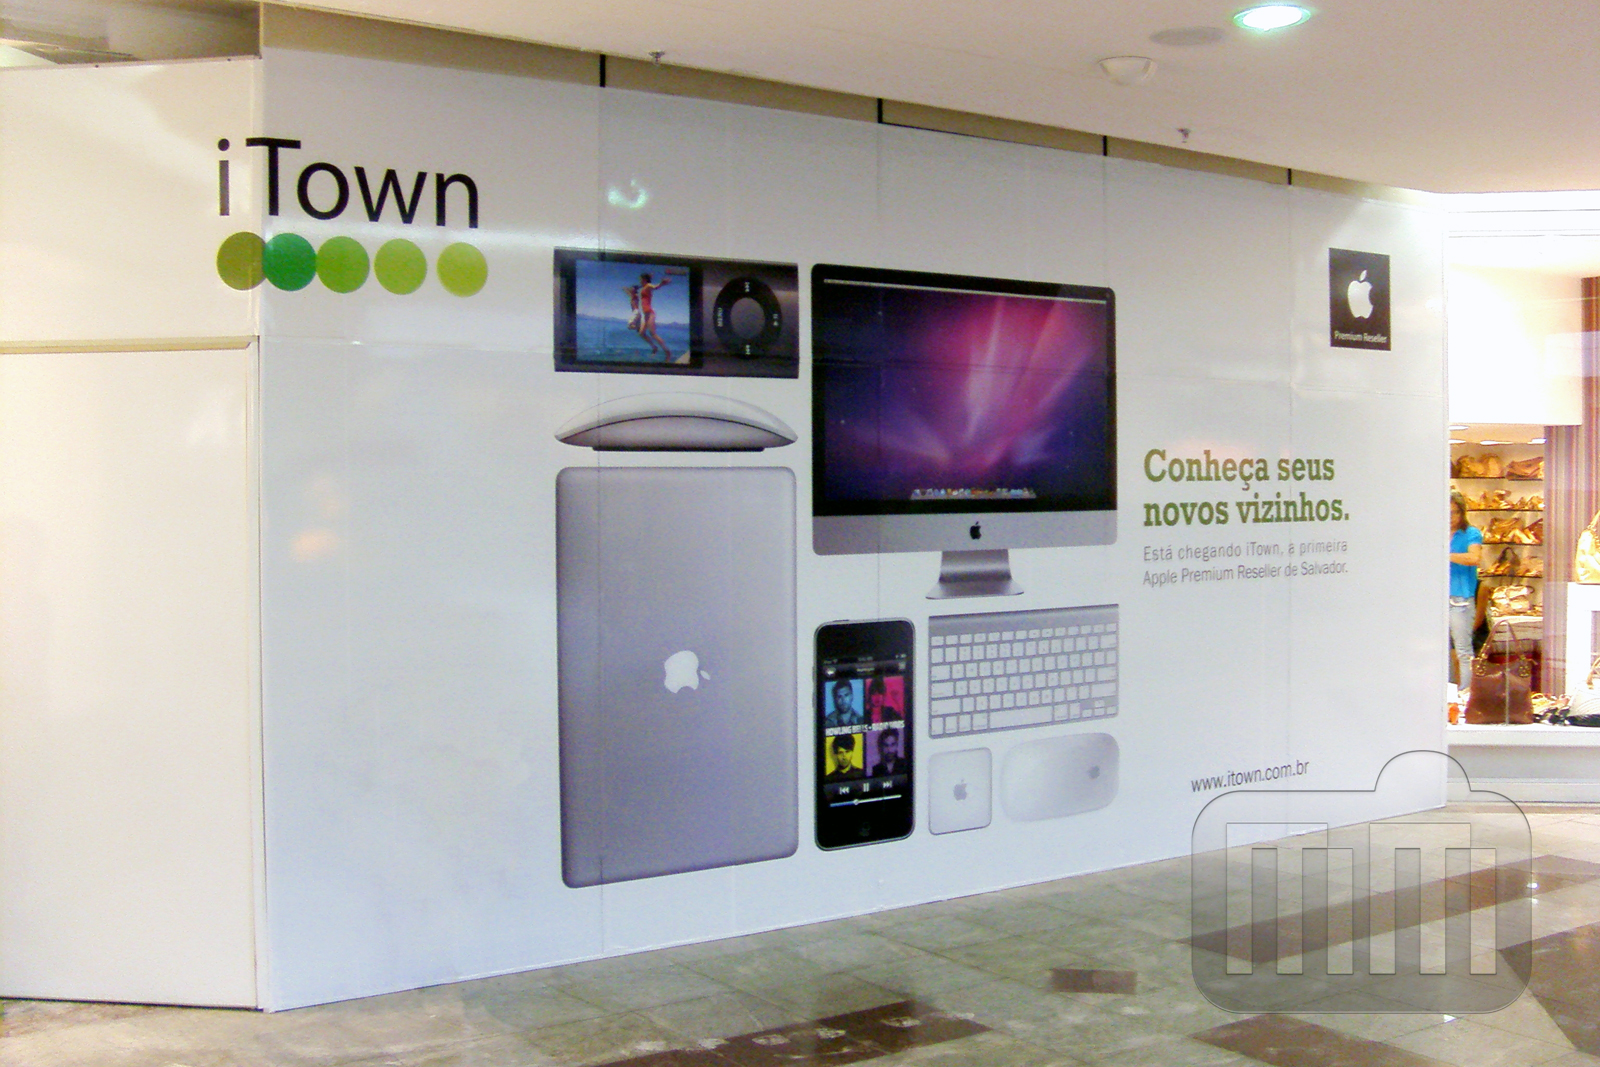 iTown, Apple Premium Reseller em Salvador